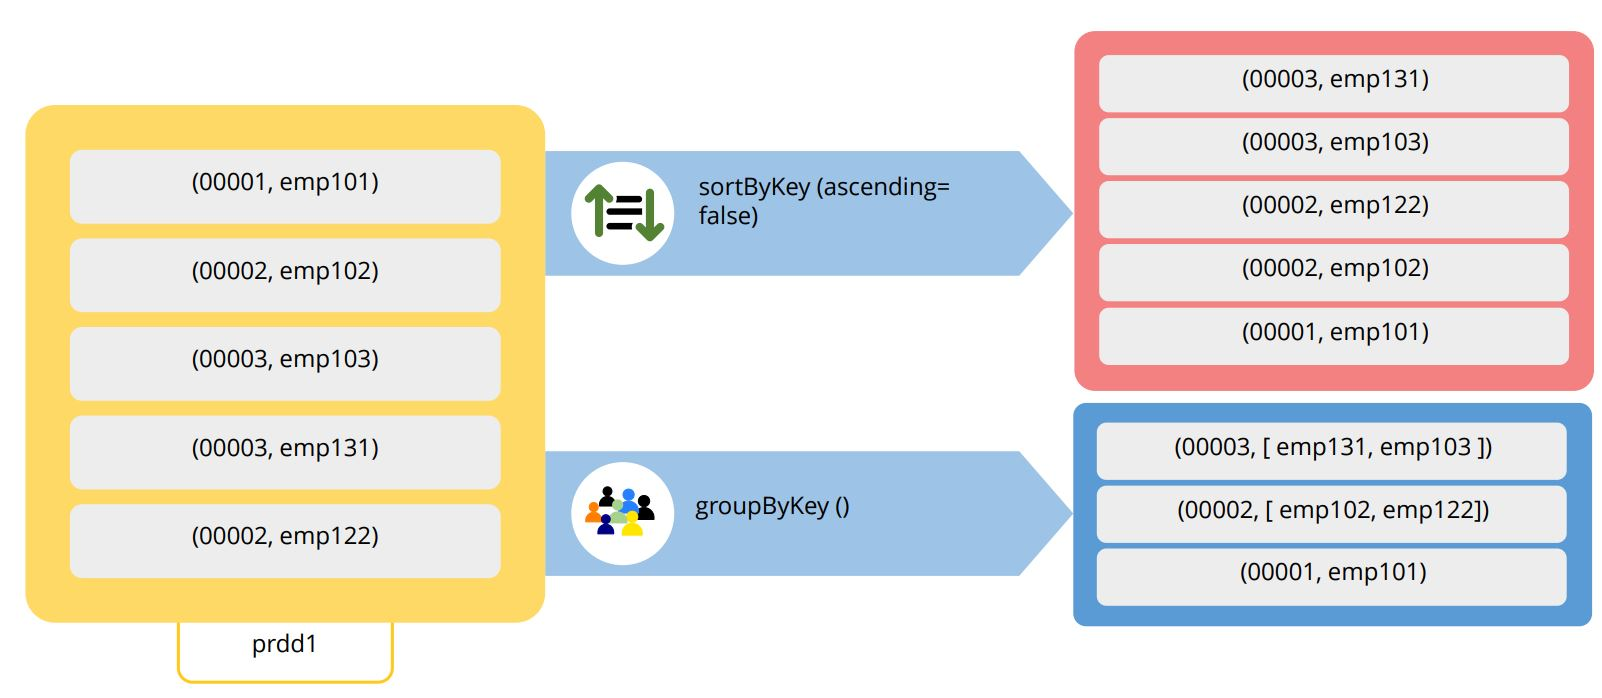 pair-rdd-operations-sortbykey-and-groupbykey